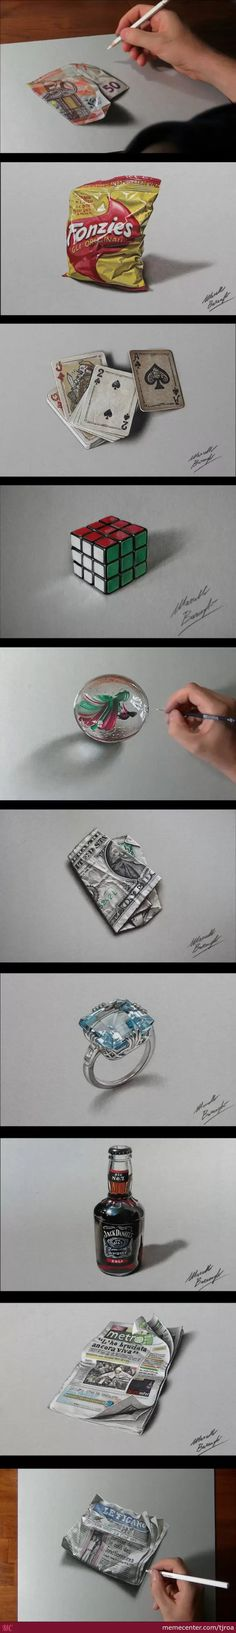 Hyper Realistic Drawings By Marcello Barenghi